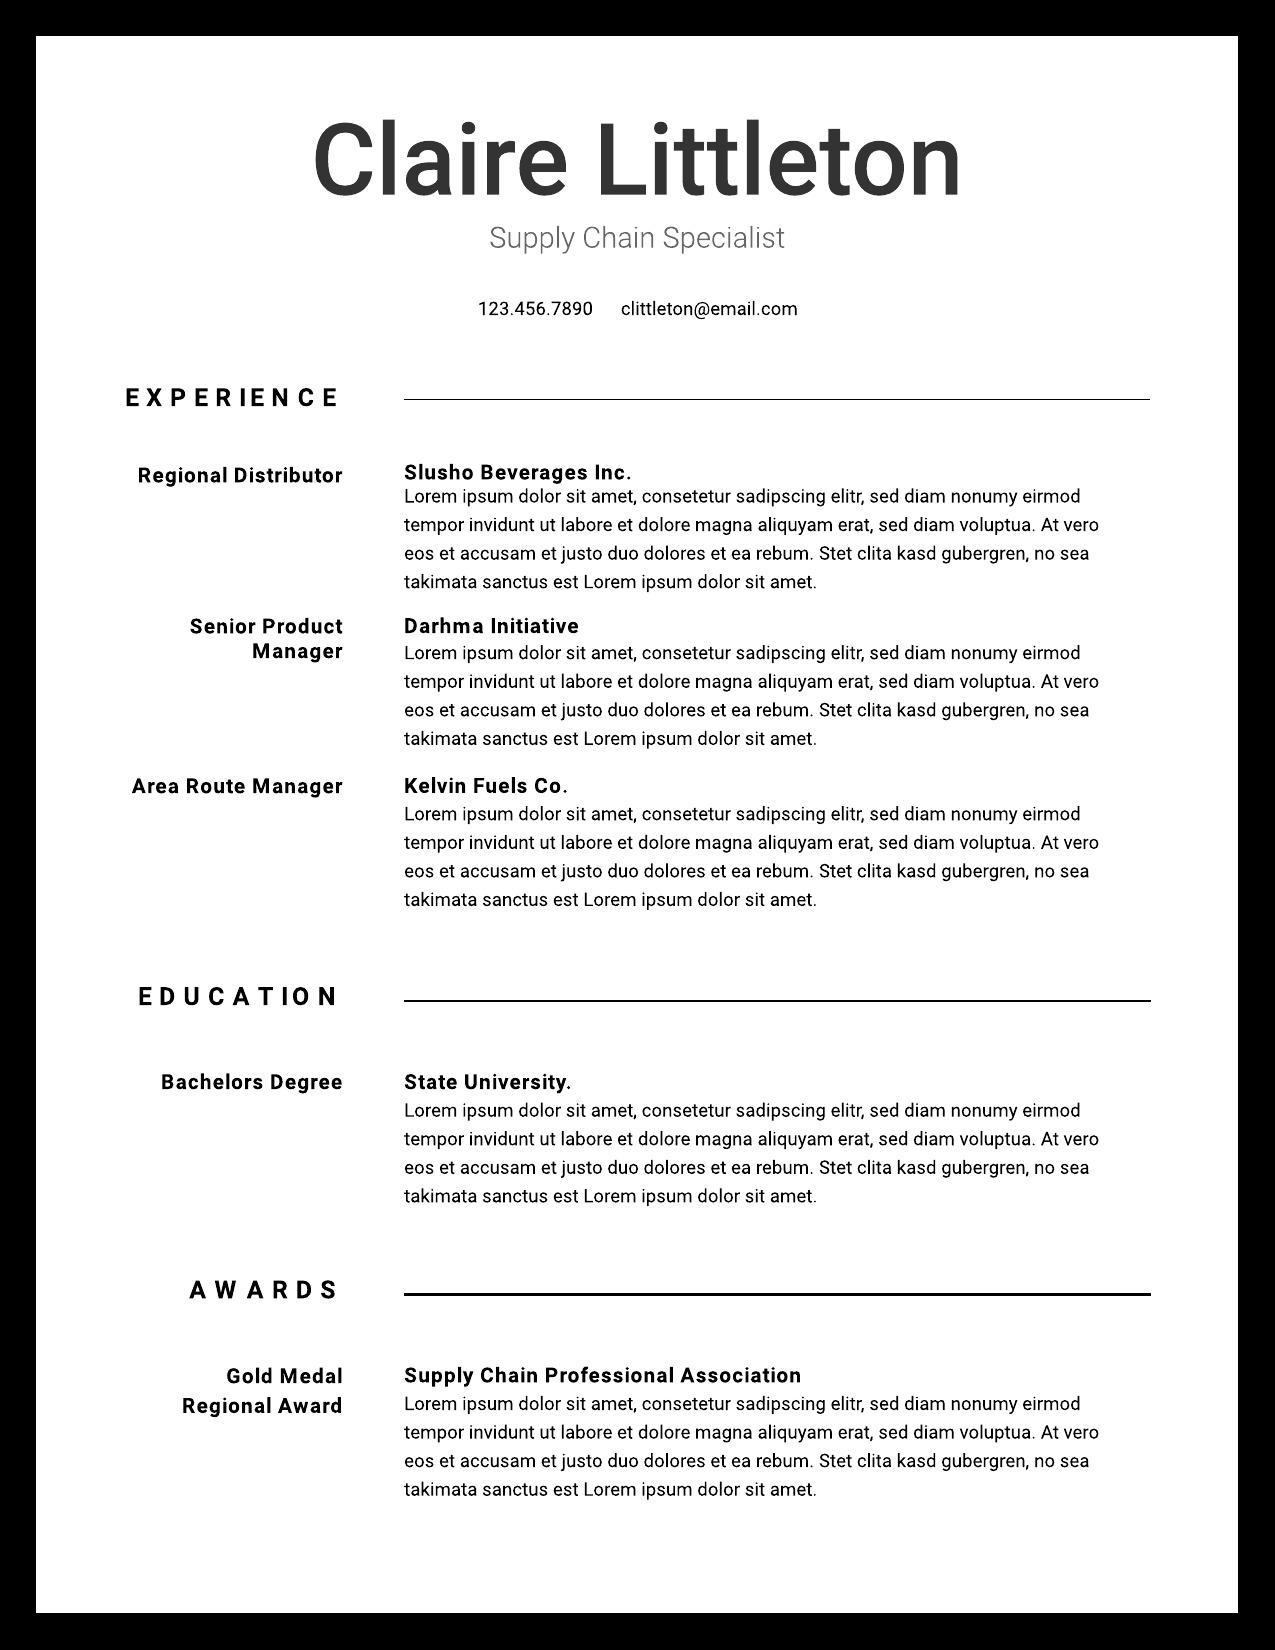 resume examples writing tips for lucidpress experience ideas image09 professional Resume Experience Ideas For Resume